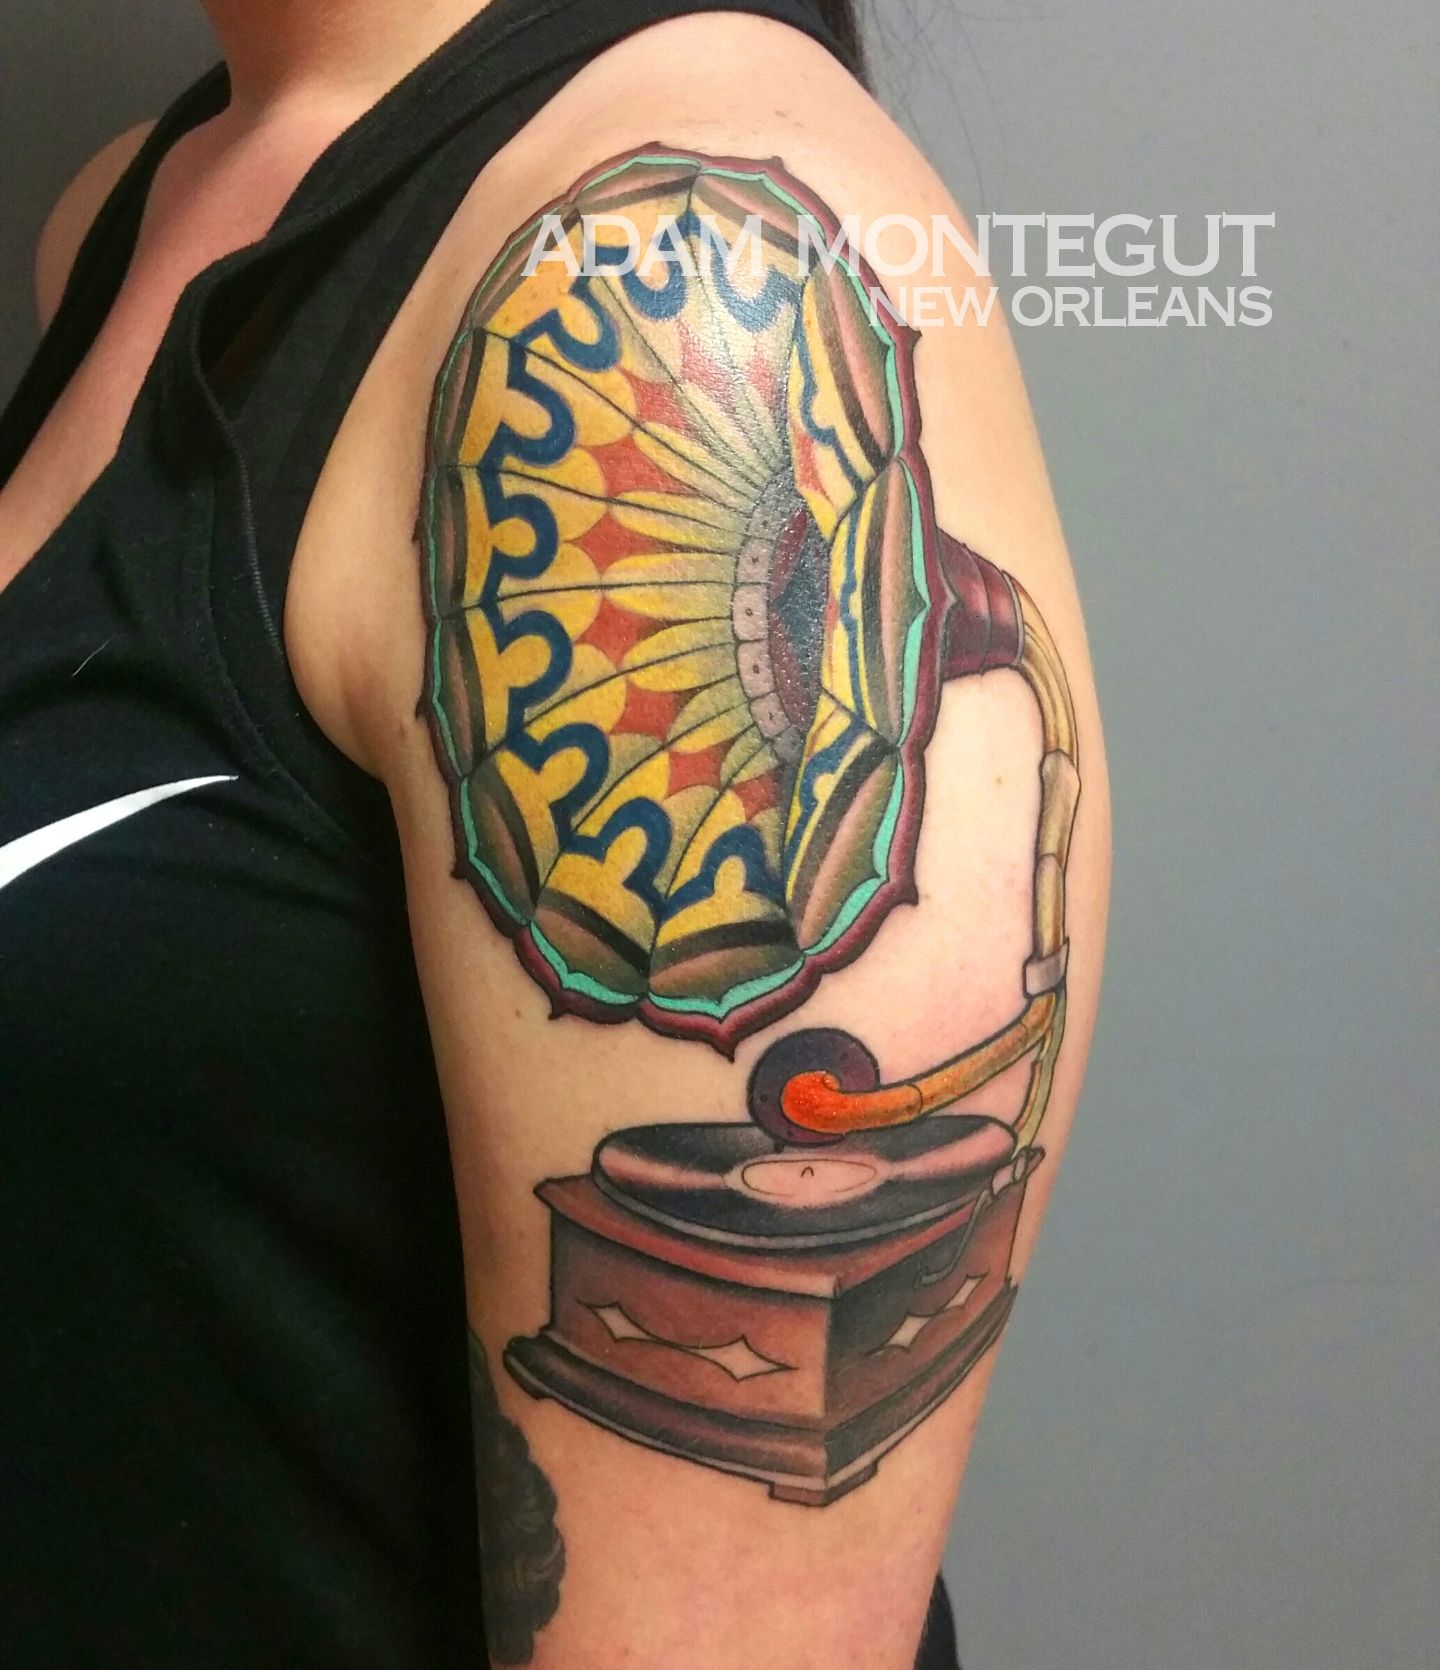 Tattoo By Adam Montegut The New Orleans Tattoo Museum Ideas And Designs